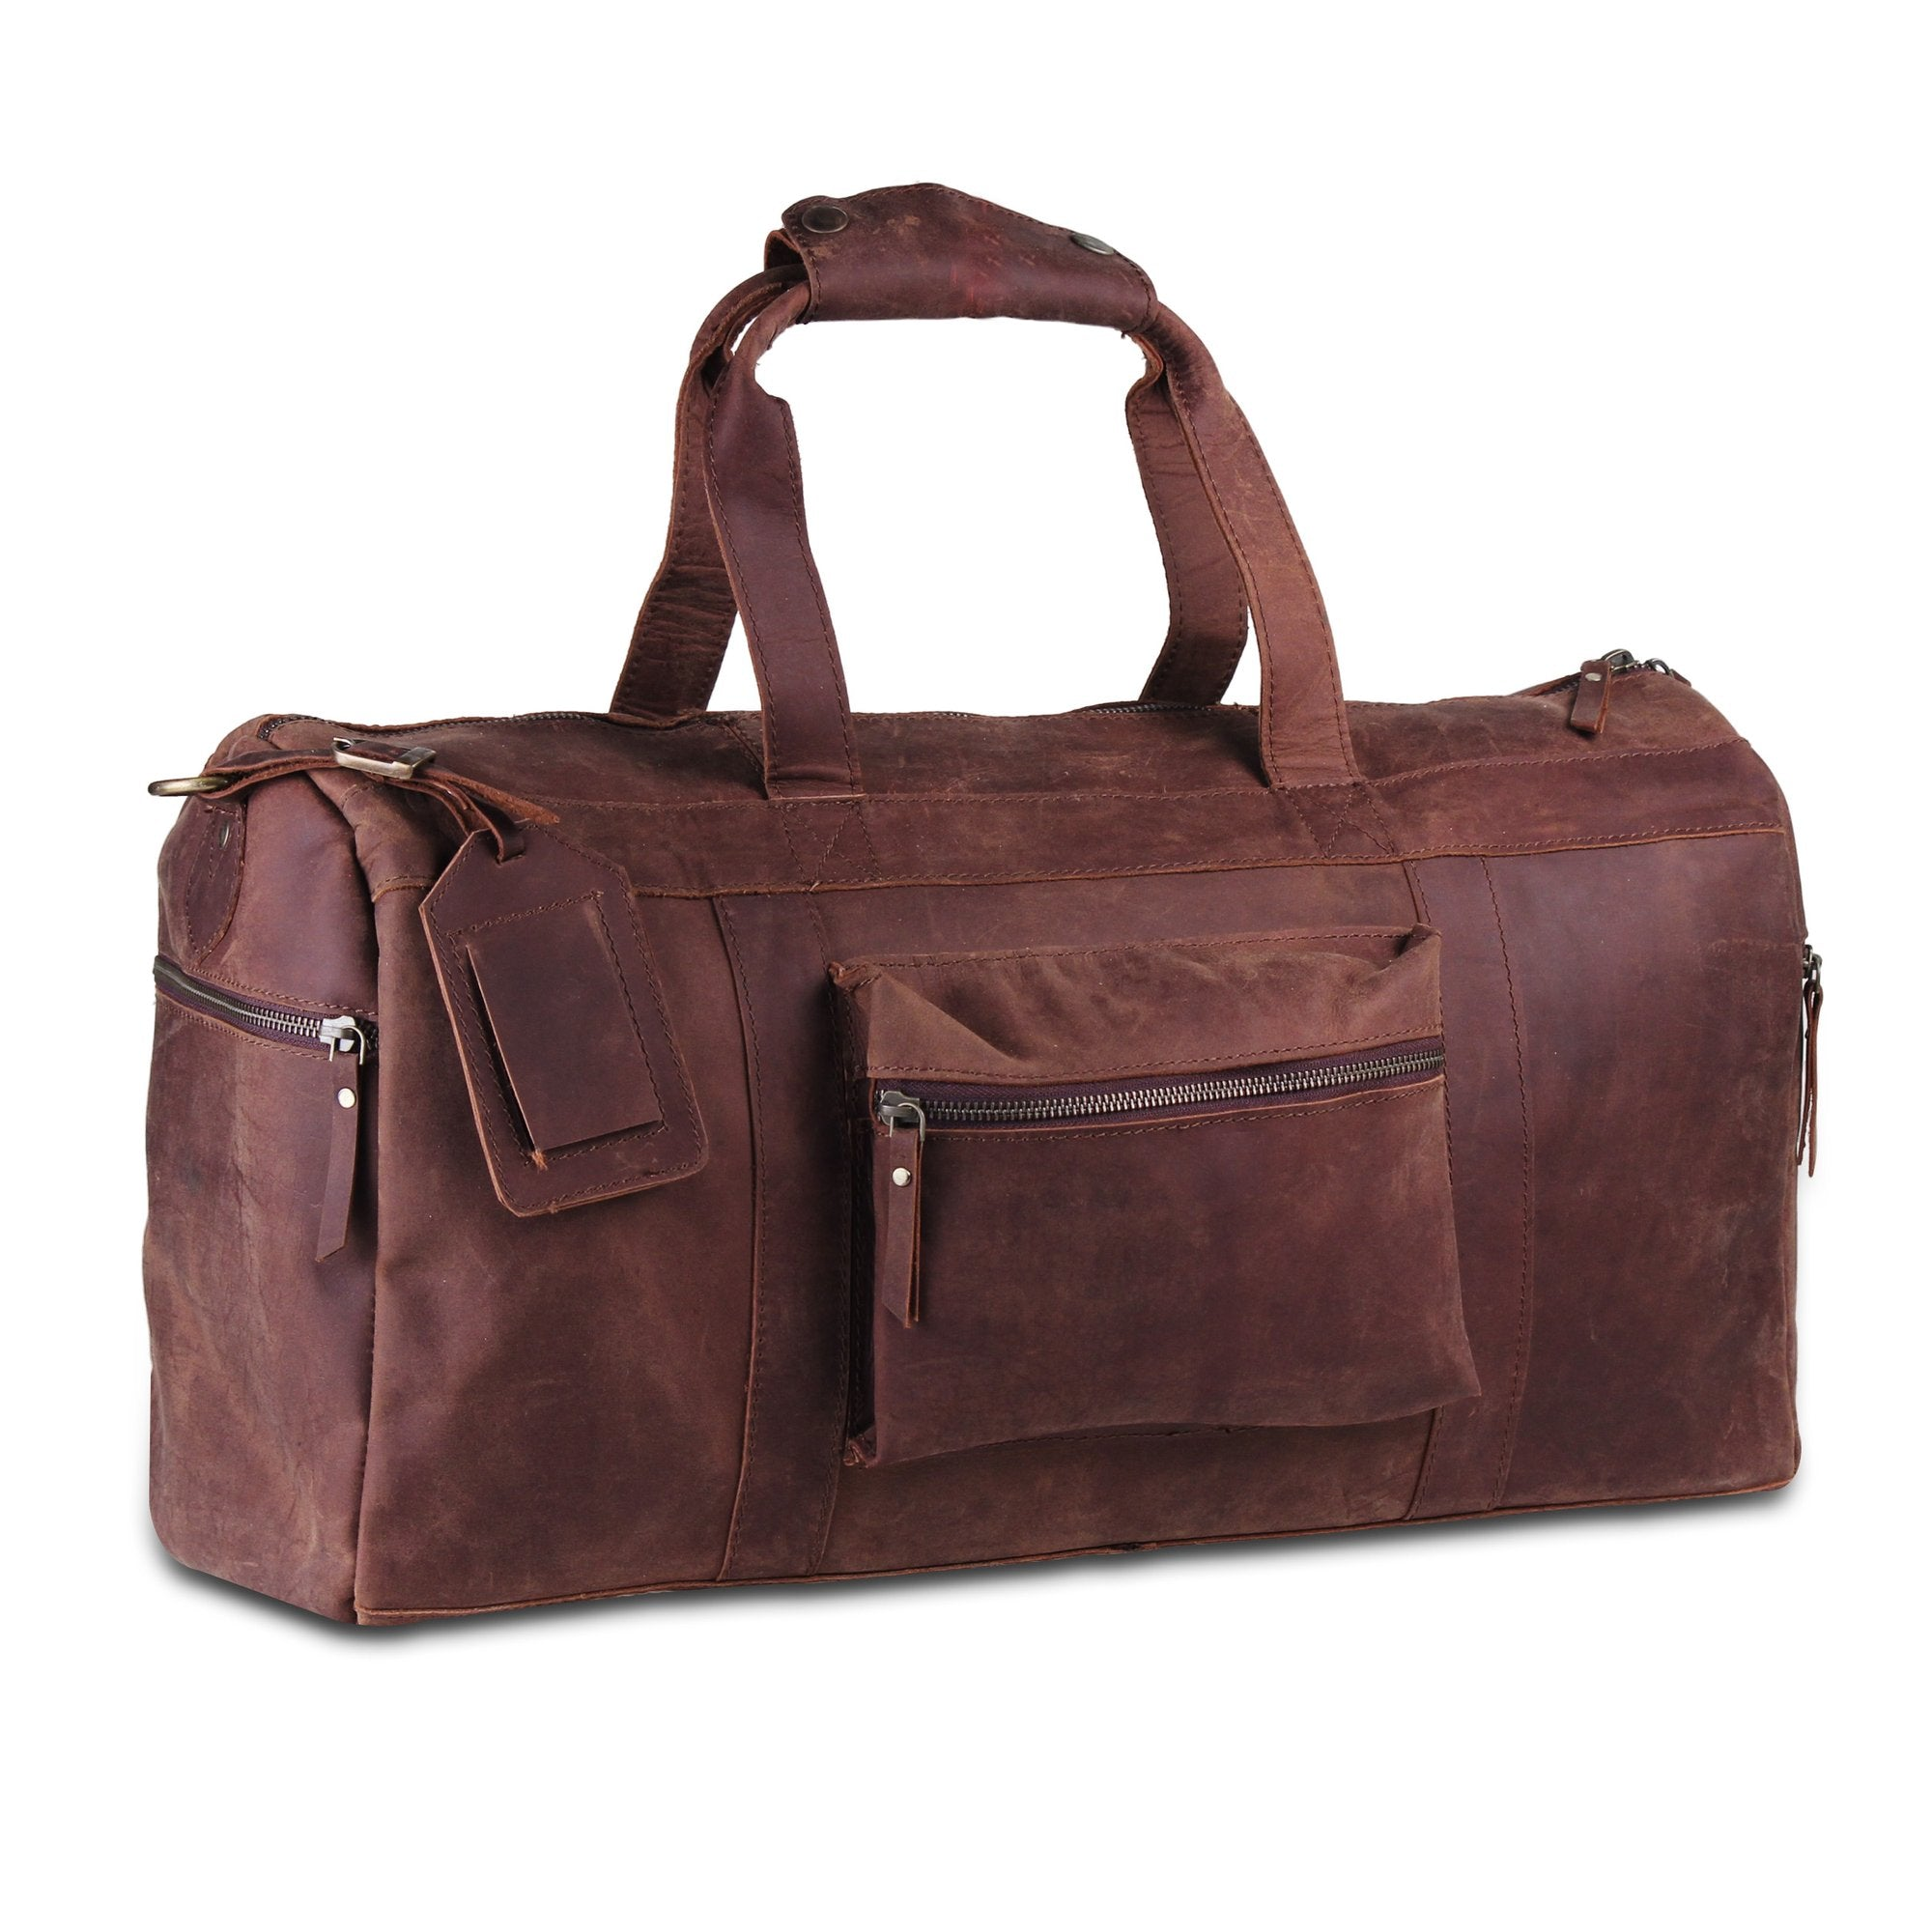 Full Grain Brown Leather Duffle Overnight Weekender Bag with Name tag by Hulsh